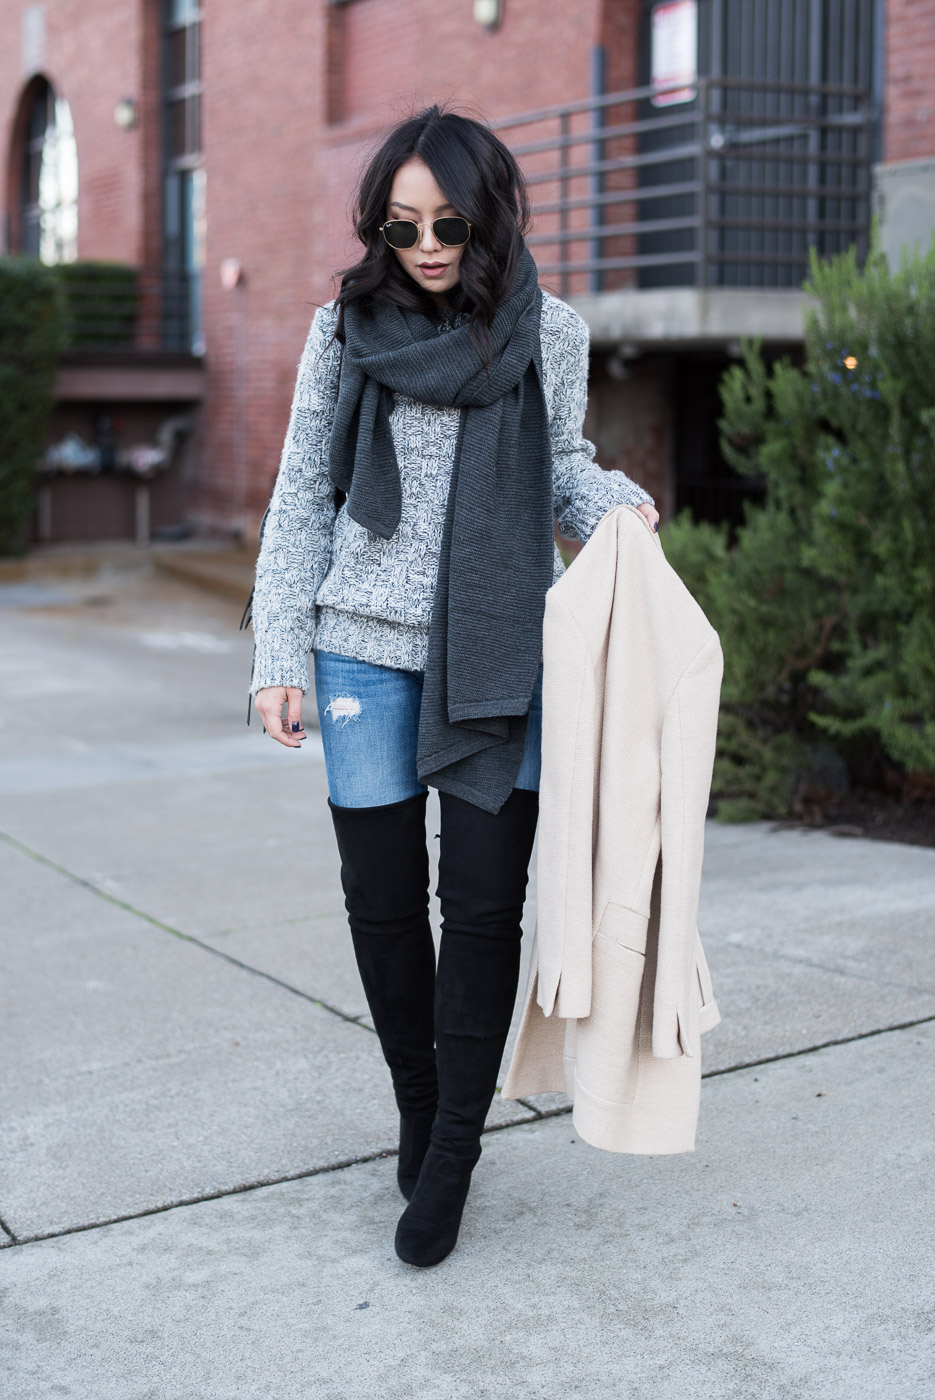 Over-The-Knee Boots For Petite: Stuart Weitzman Alllegs Boots